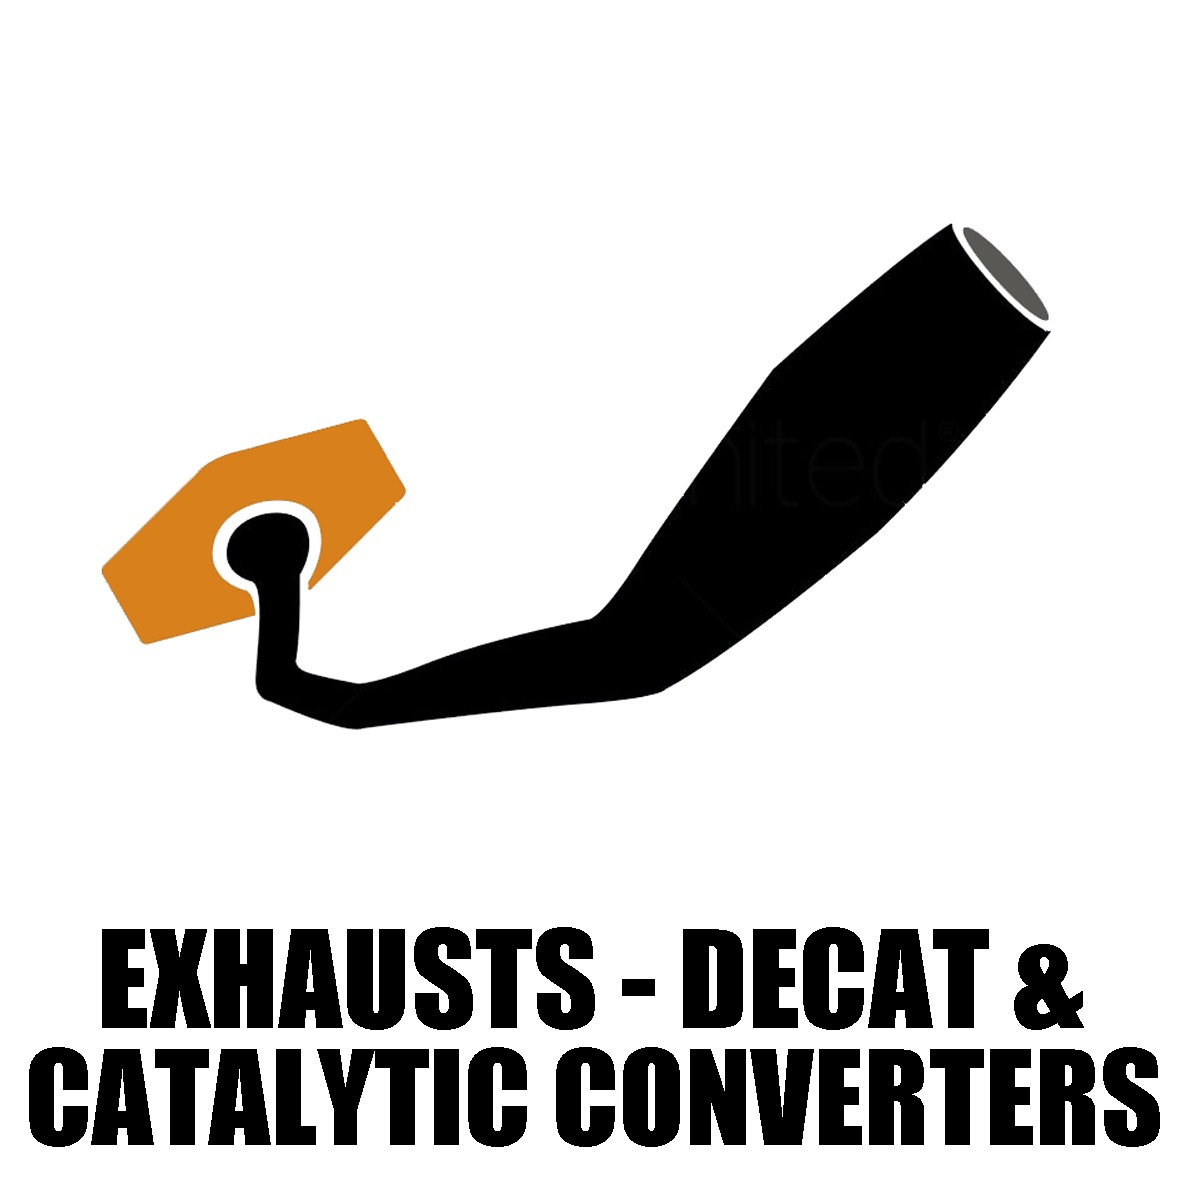 Harley decat catalytic converters